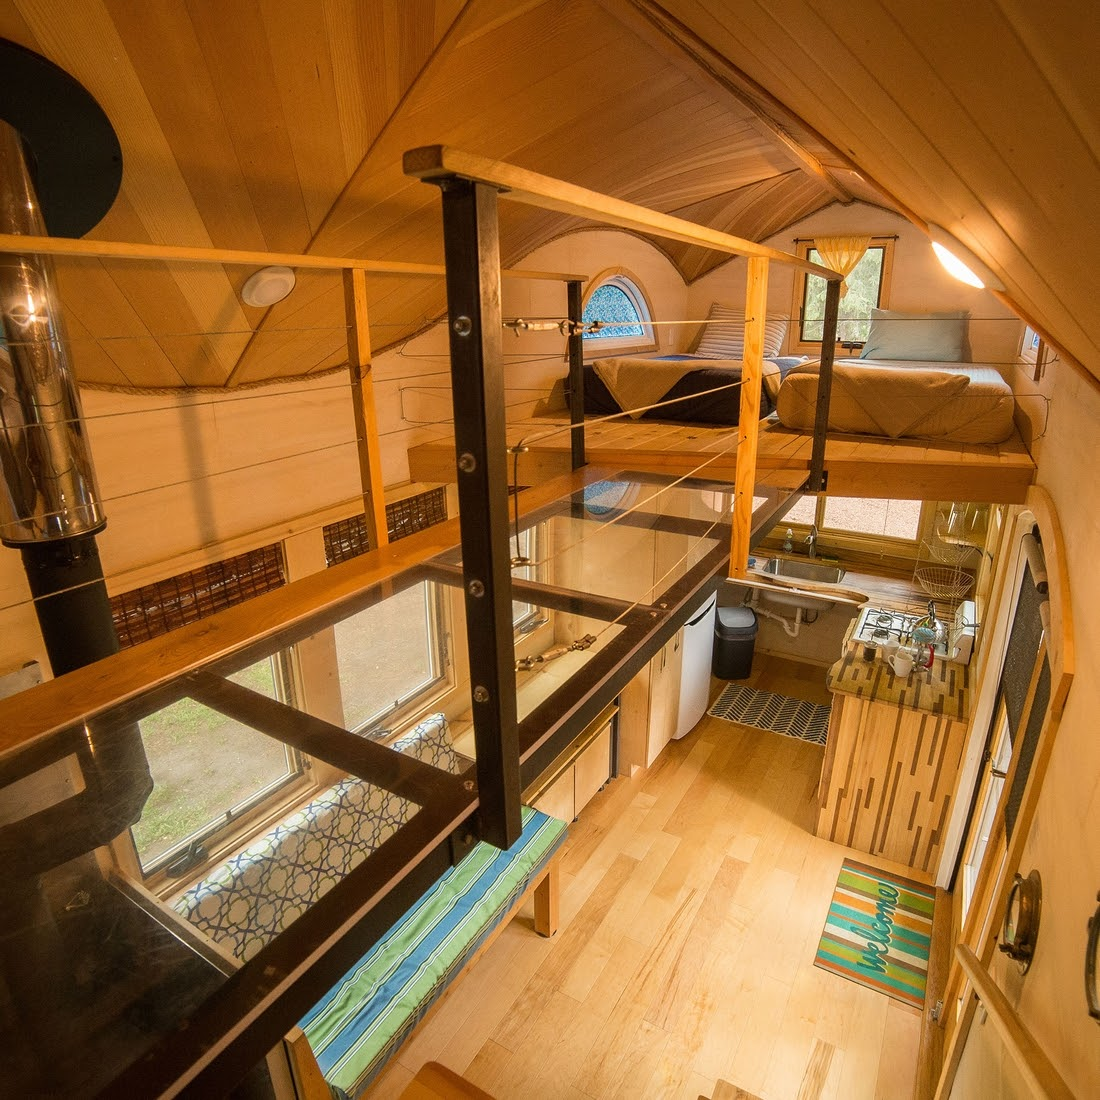 12-Guest-Bedroom-from-Elevated-Walkway-WeeCasa-The-Pequod-Tiny-House-Architecture-www-designstack-co